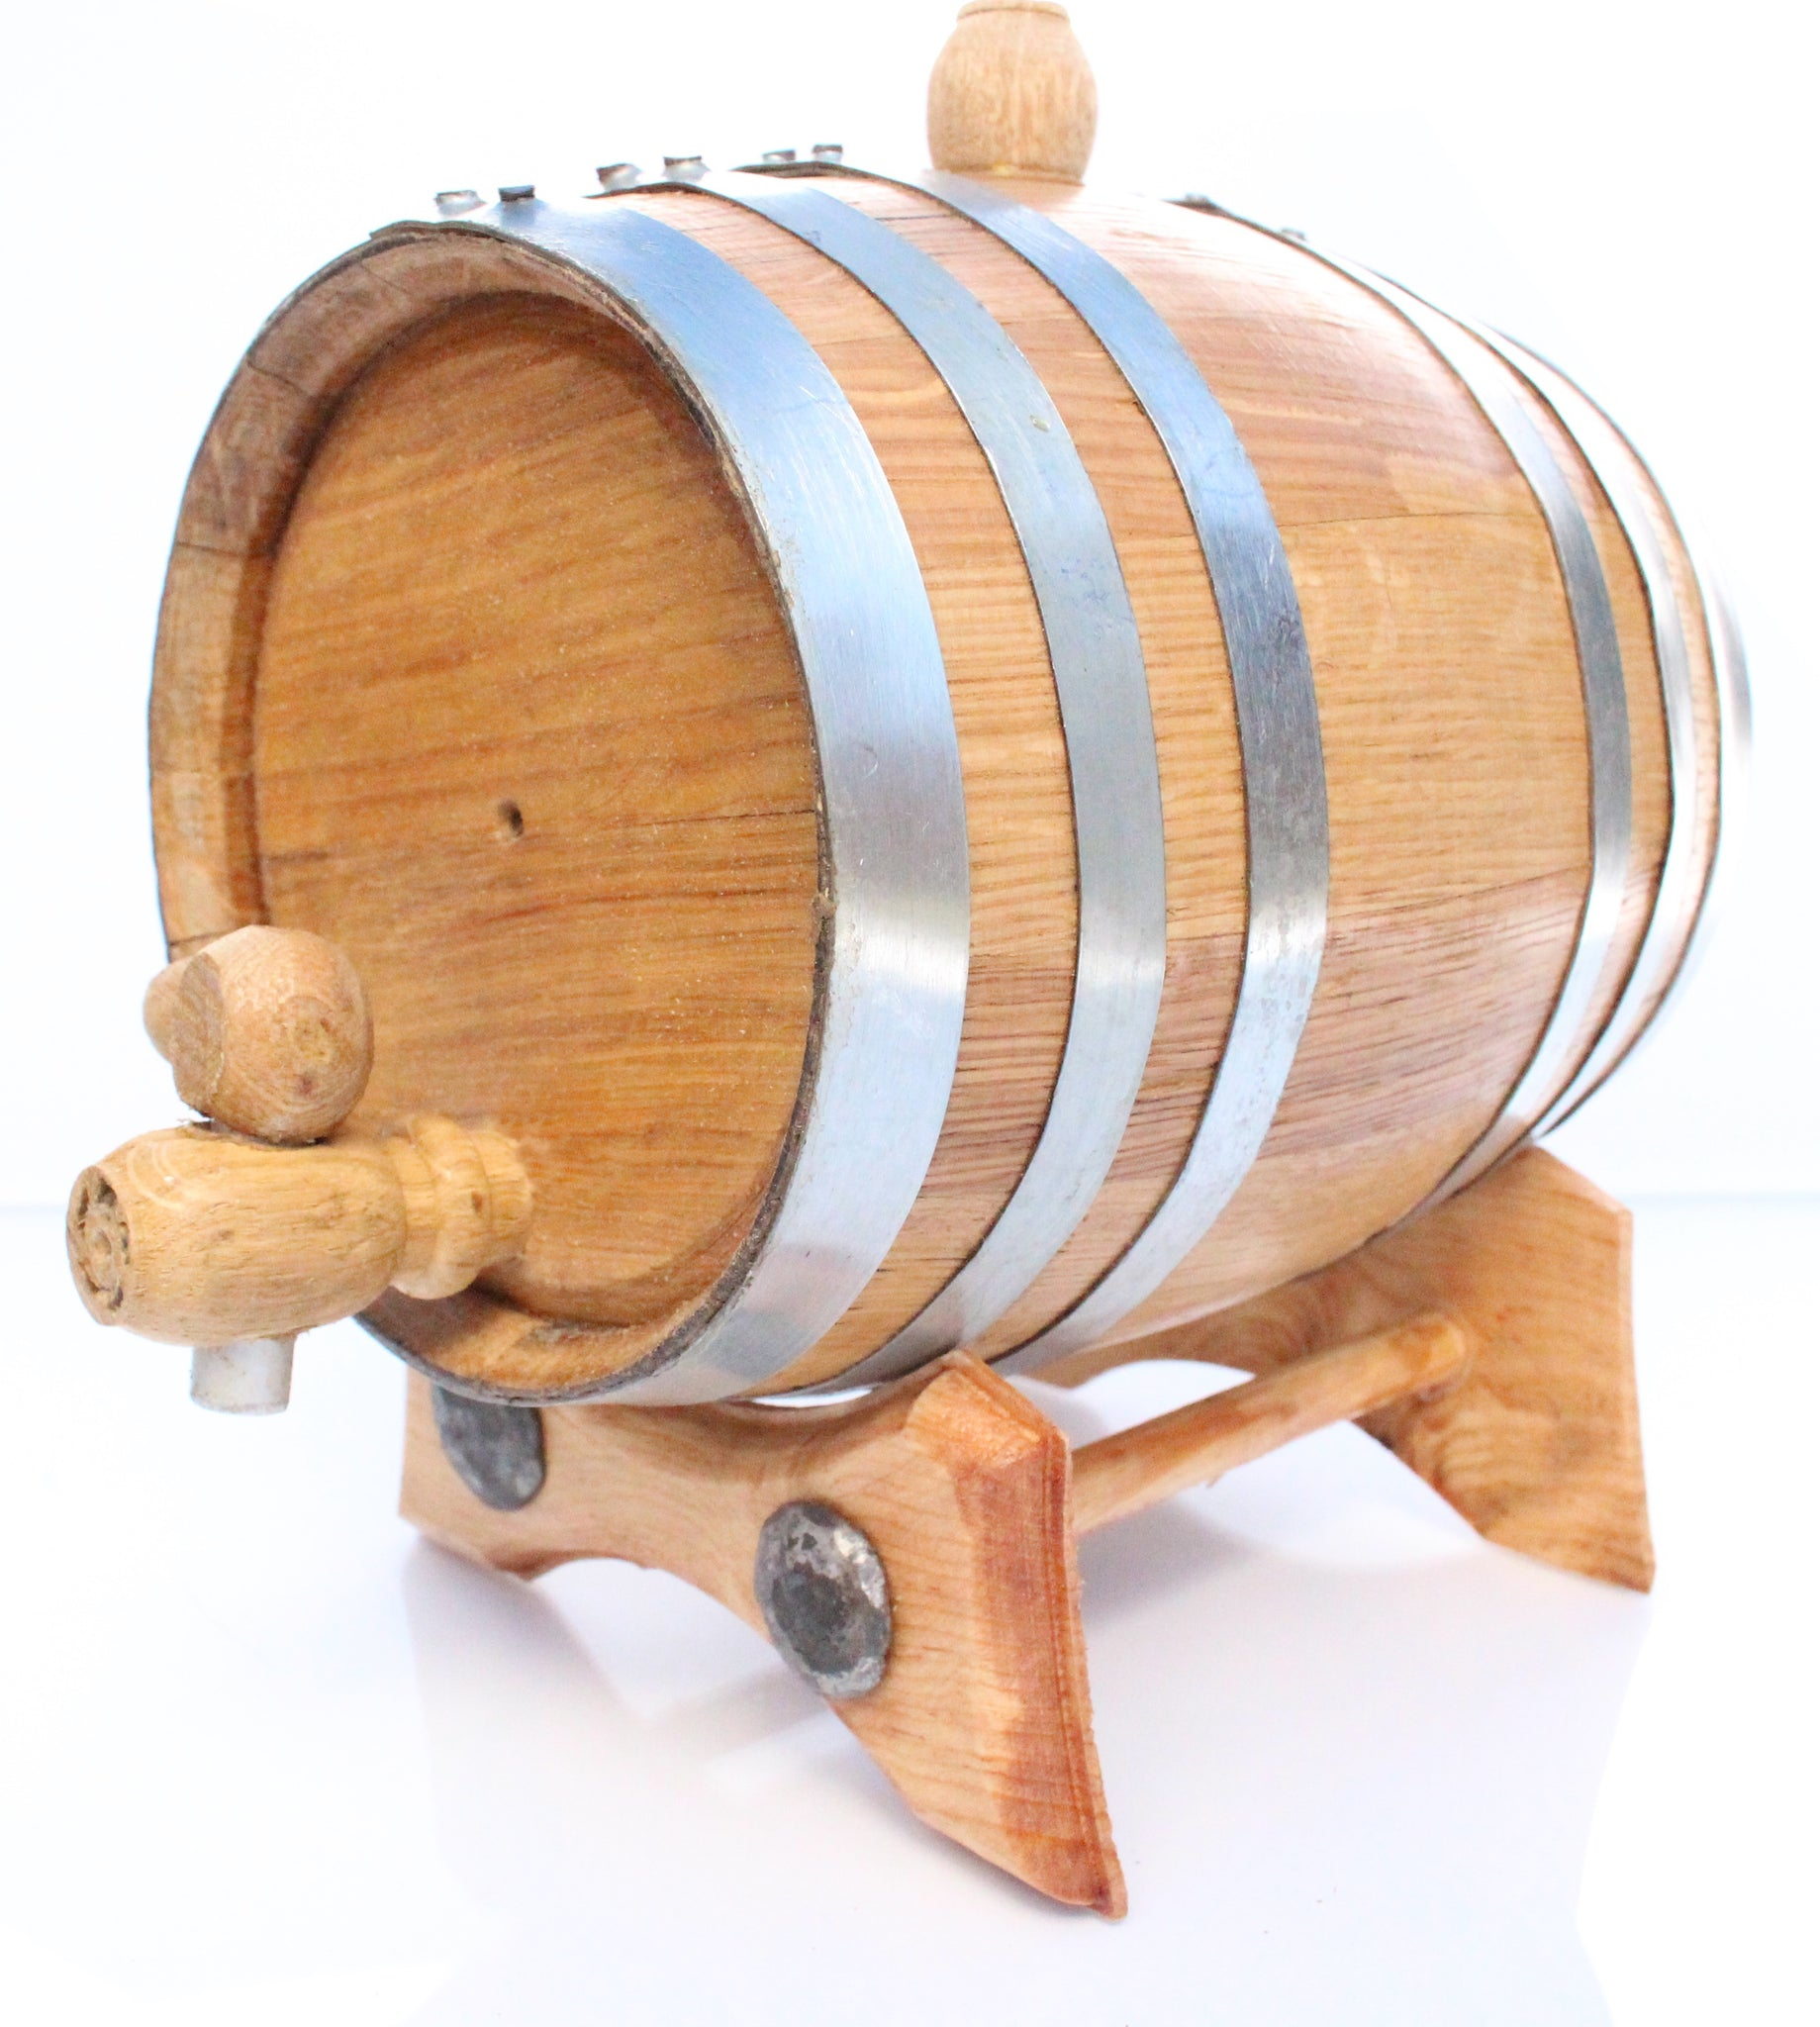 1 Liter Golden Oak Barrel for Aging – Polished Steel Hoops - Golden Oak Barrel